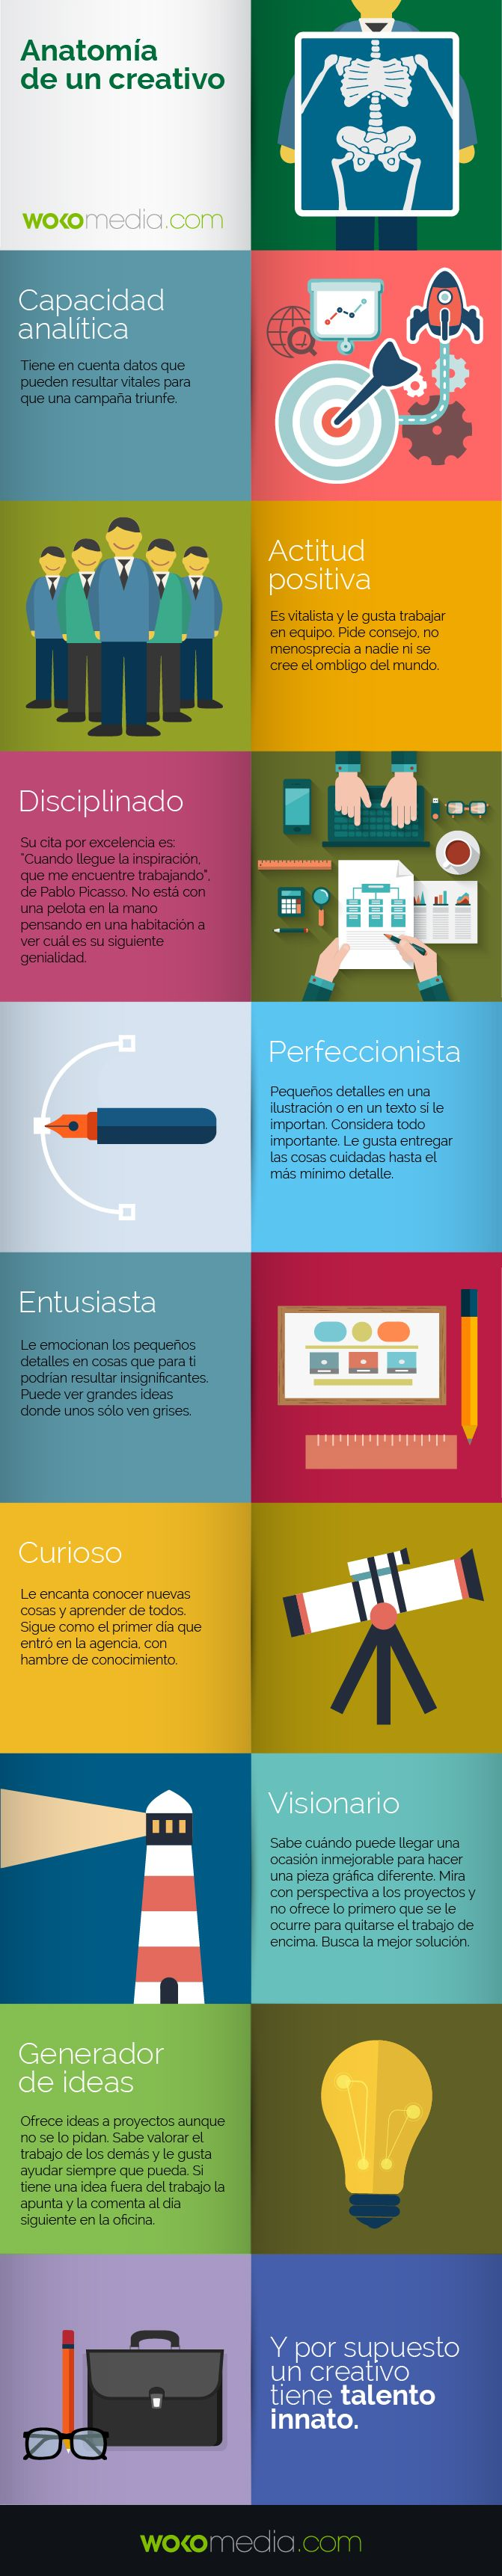 Cómo es un creativo de una agencia de marketing online #infografia #infographic #marketing vía: http://wokomedia.com/anatomia-de-un-creativo-marketing-online/